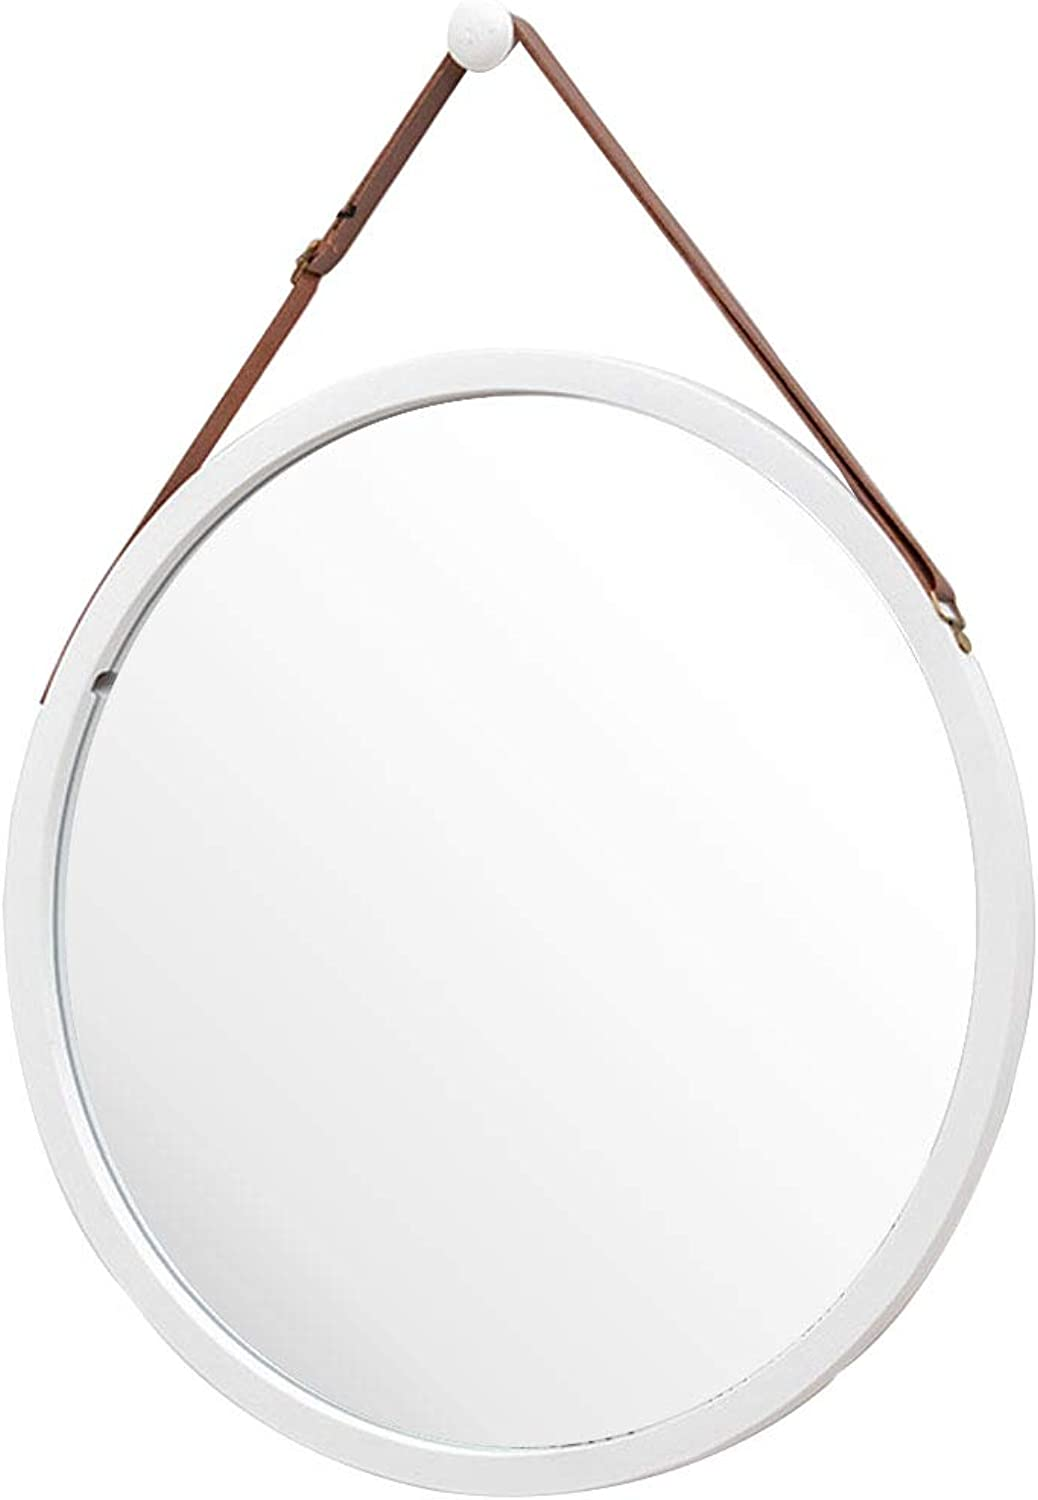 Round Wall-Mounted Mirror with Leather Hanging Strap (Adjustable) Bamboo Frame Mirror for Bathroom Makeup Bedroom Hallway Home Decoration,15-17.7 Inch